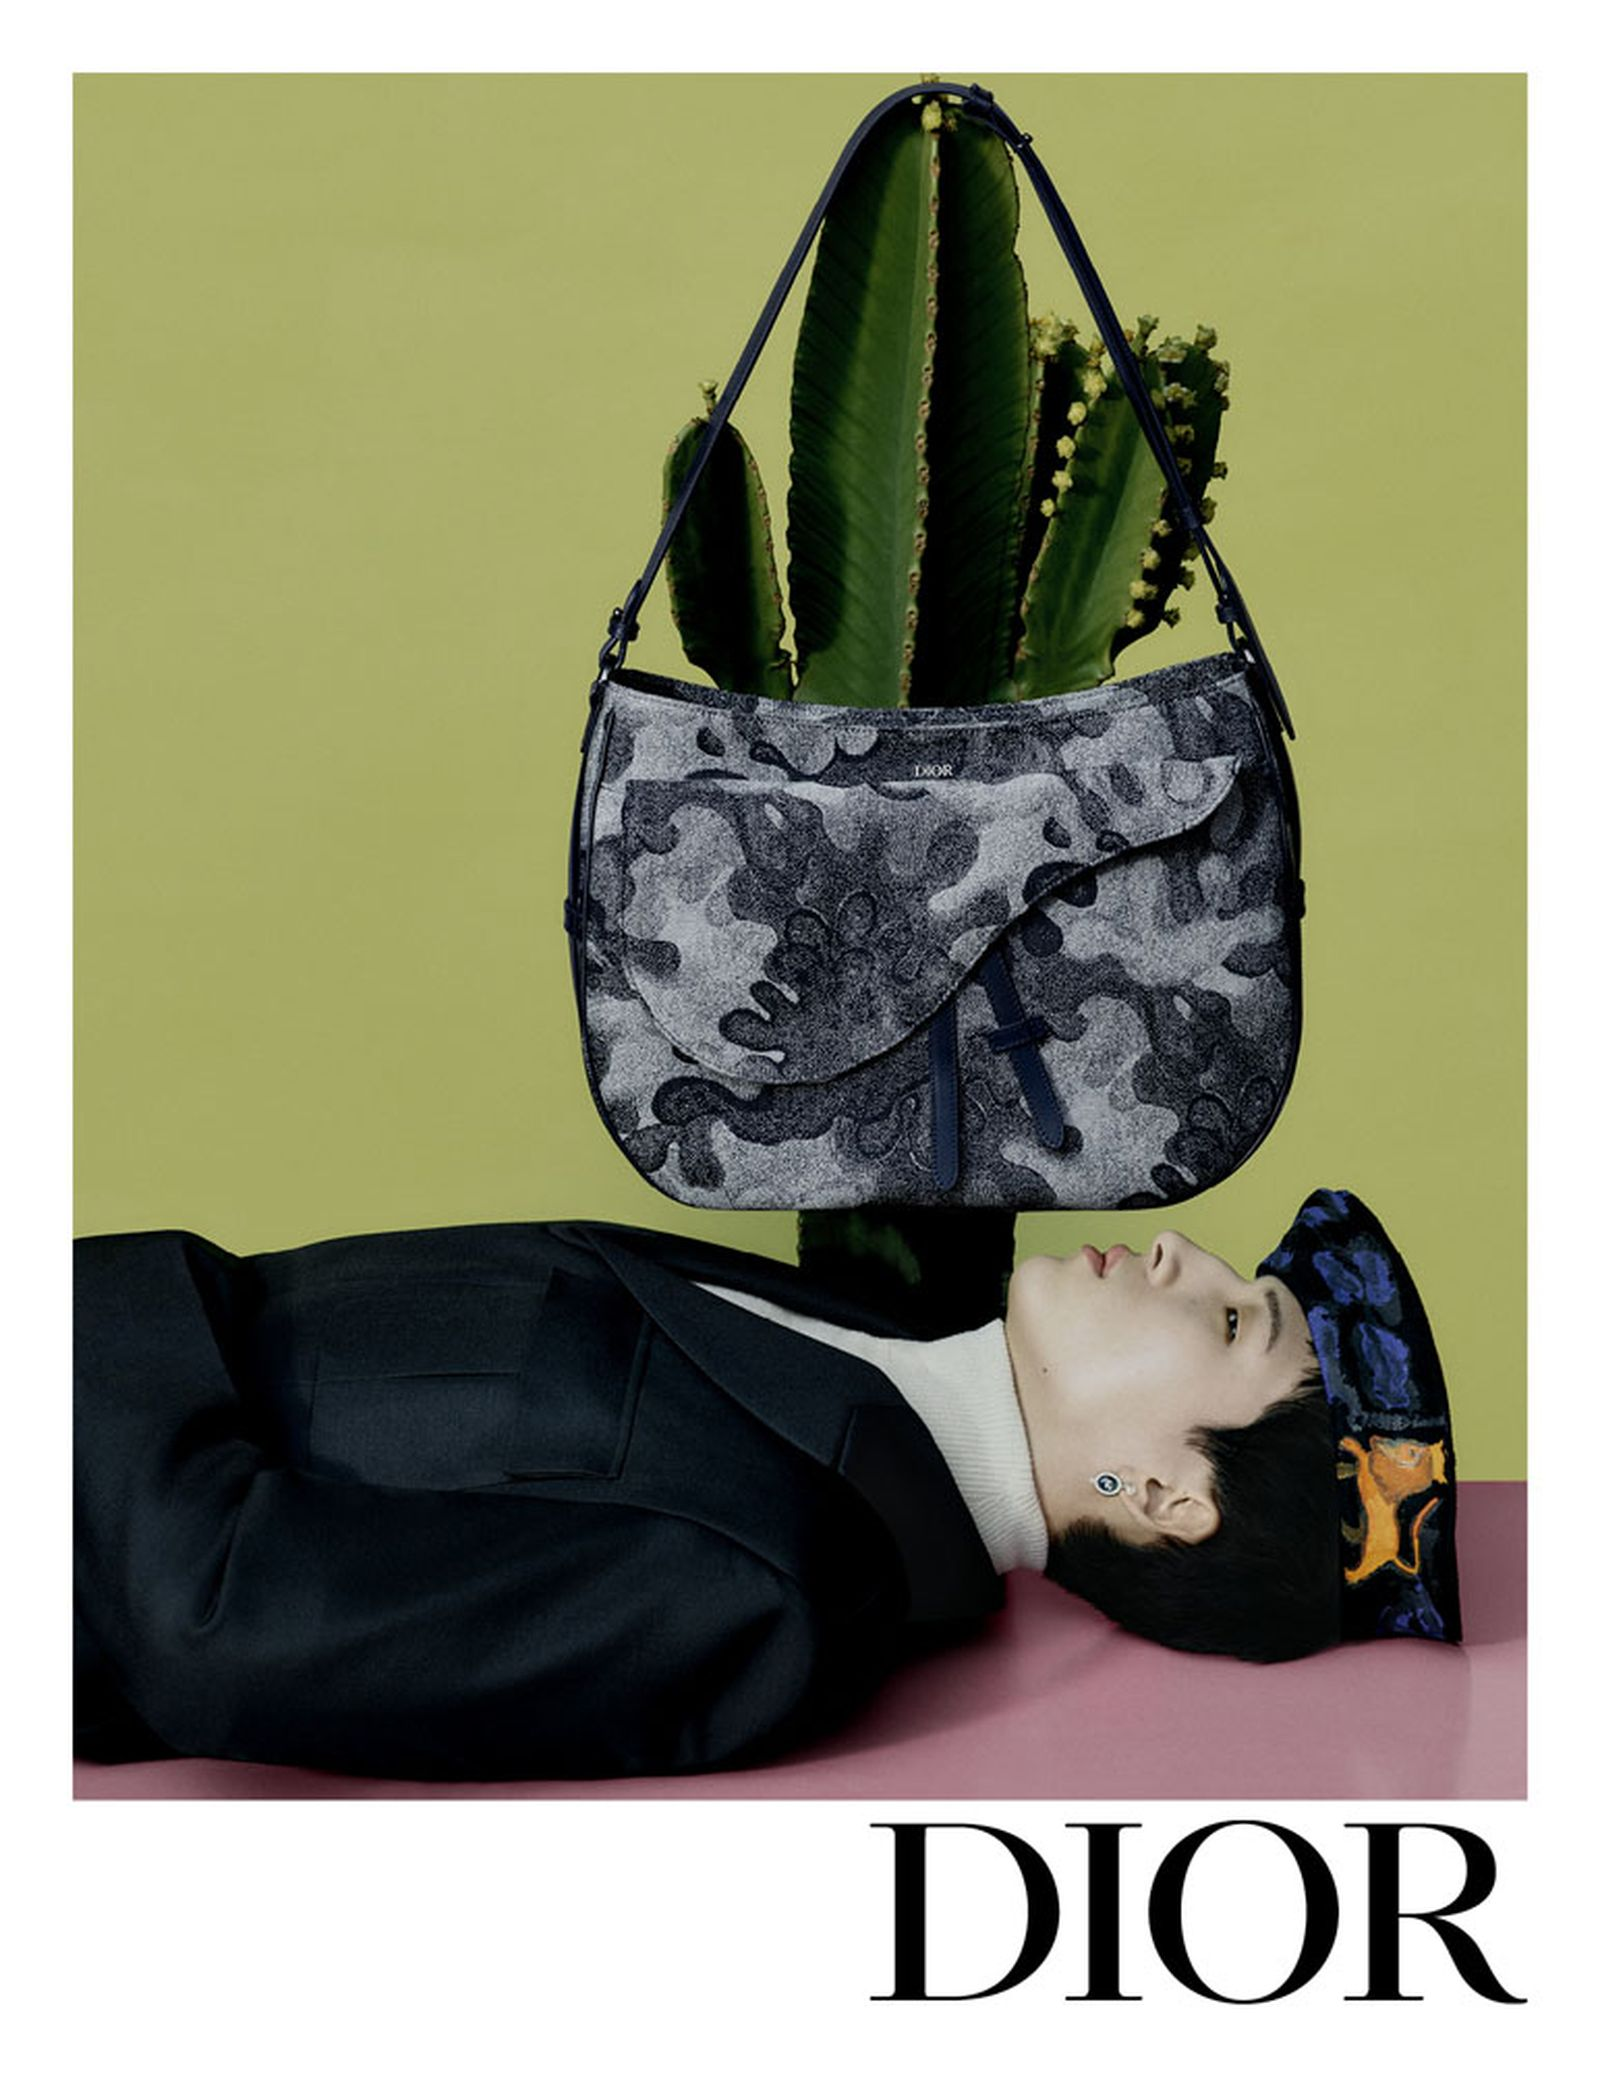 dior-mens-winter-2021-campain-peter-doig-collaboration-01